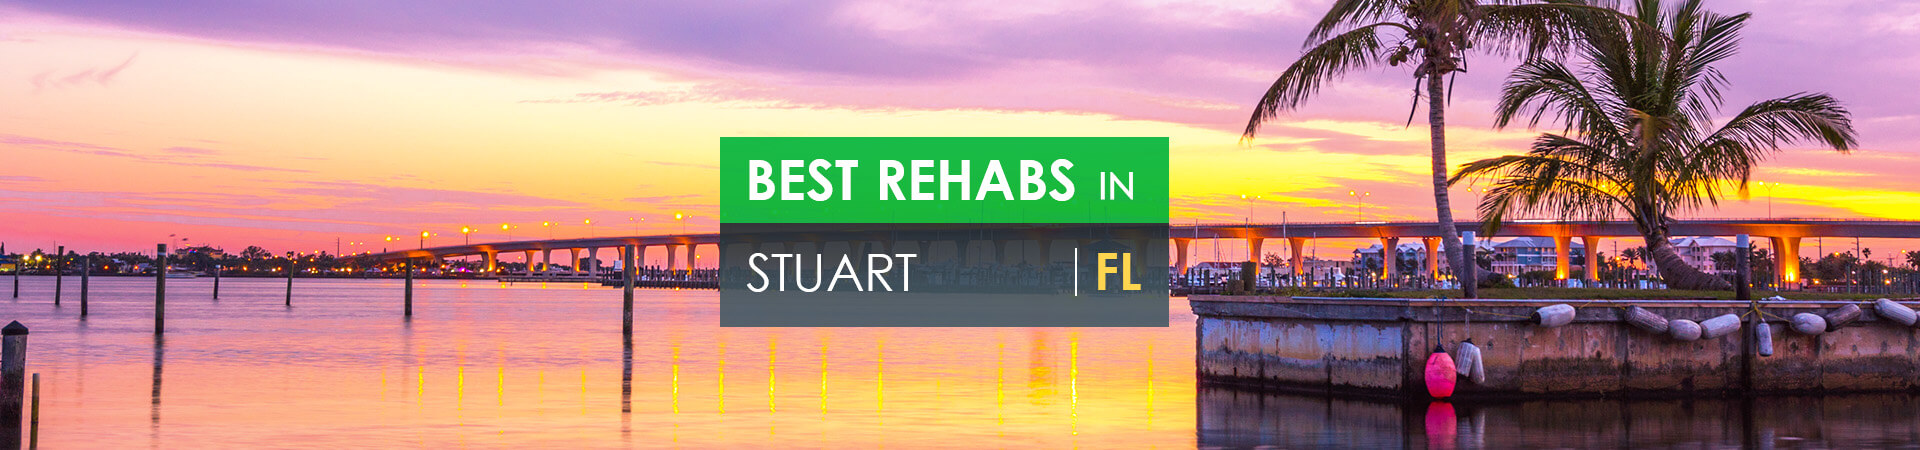 Best rehabs in Stuart, FL